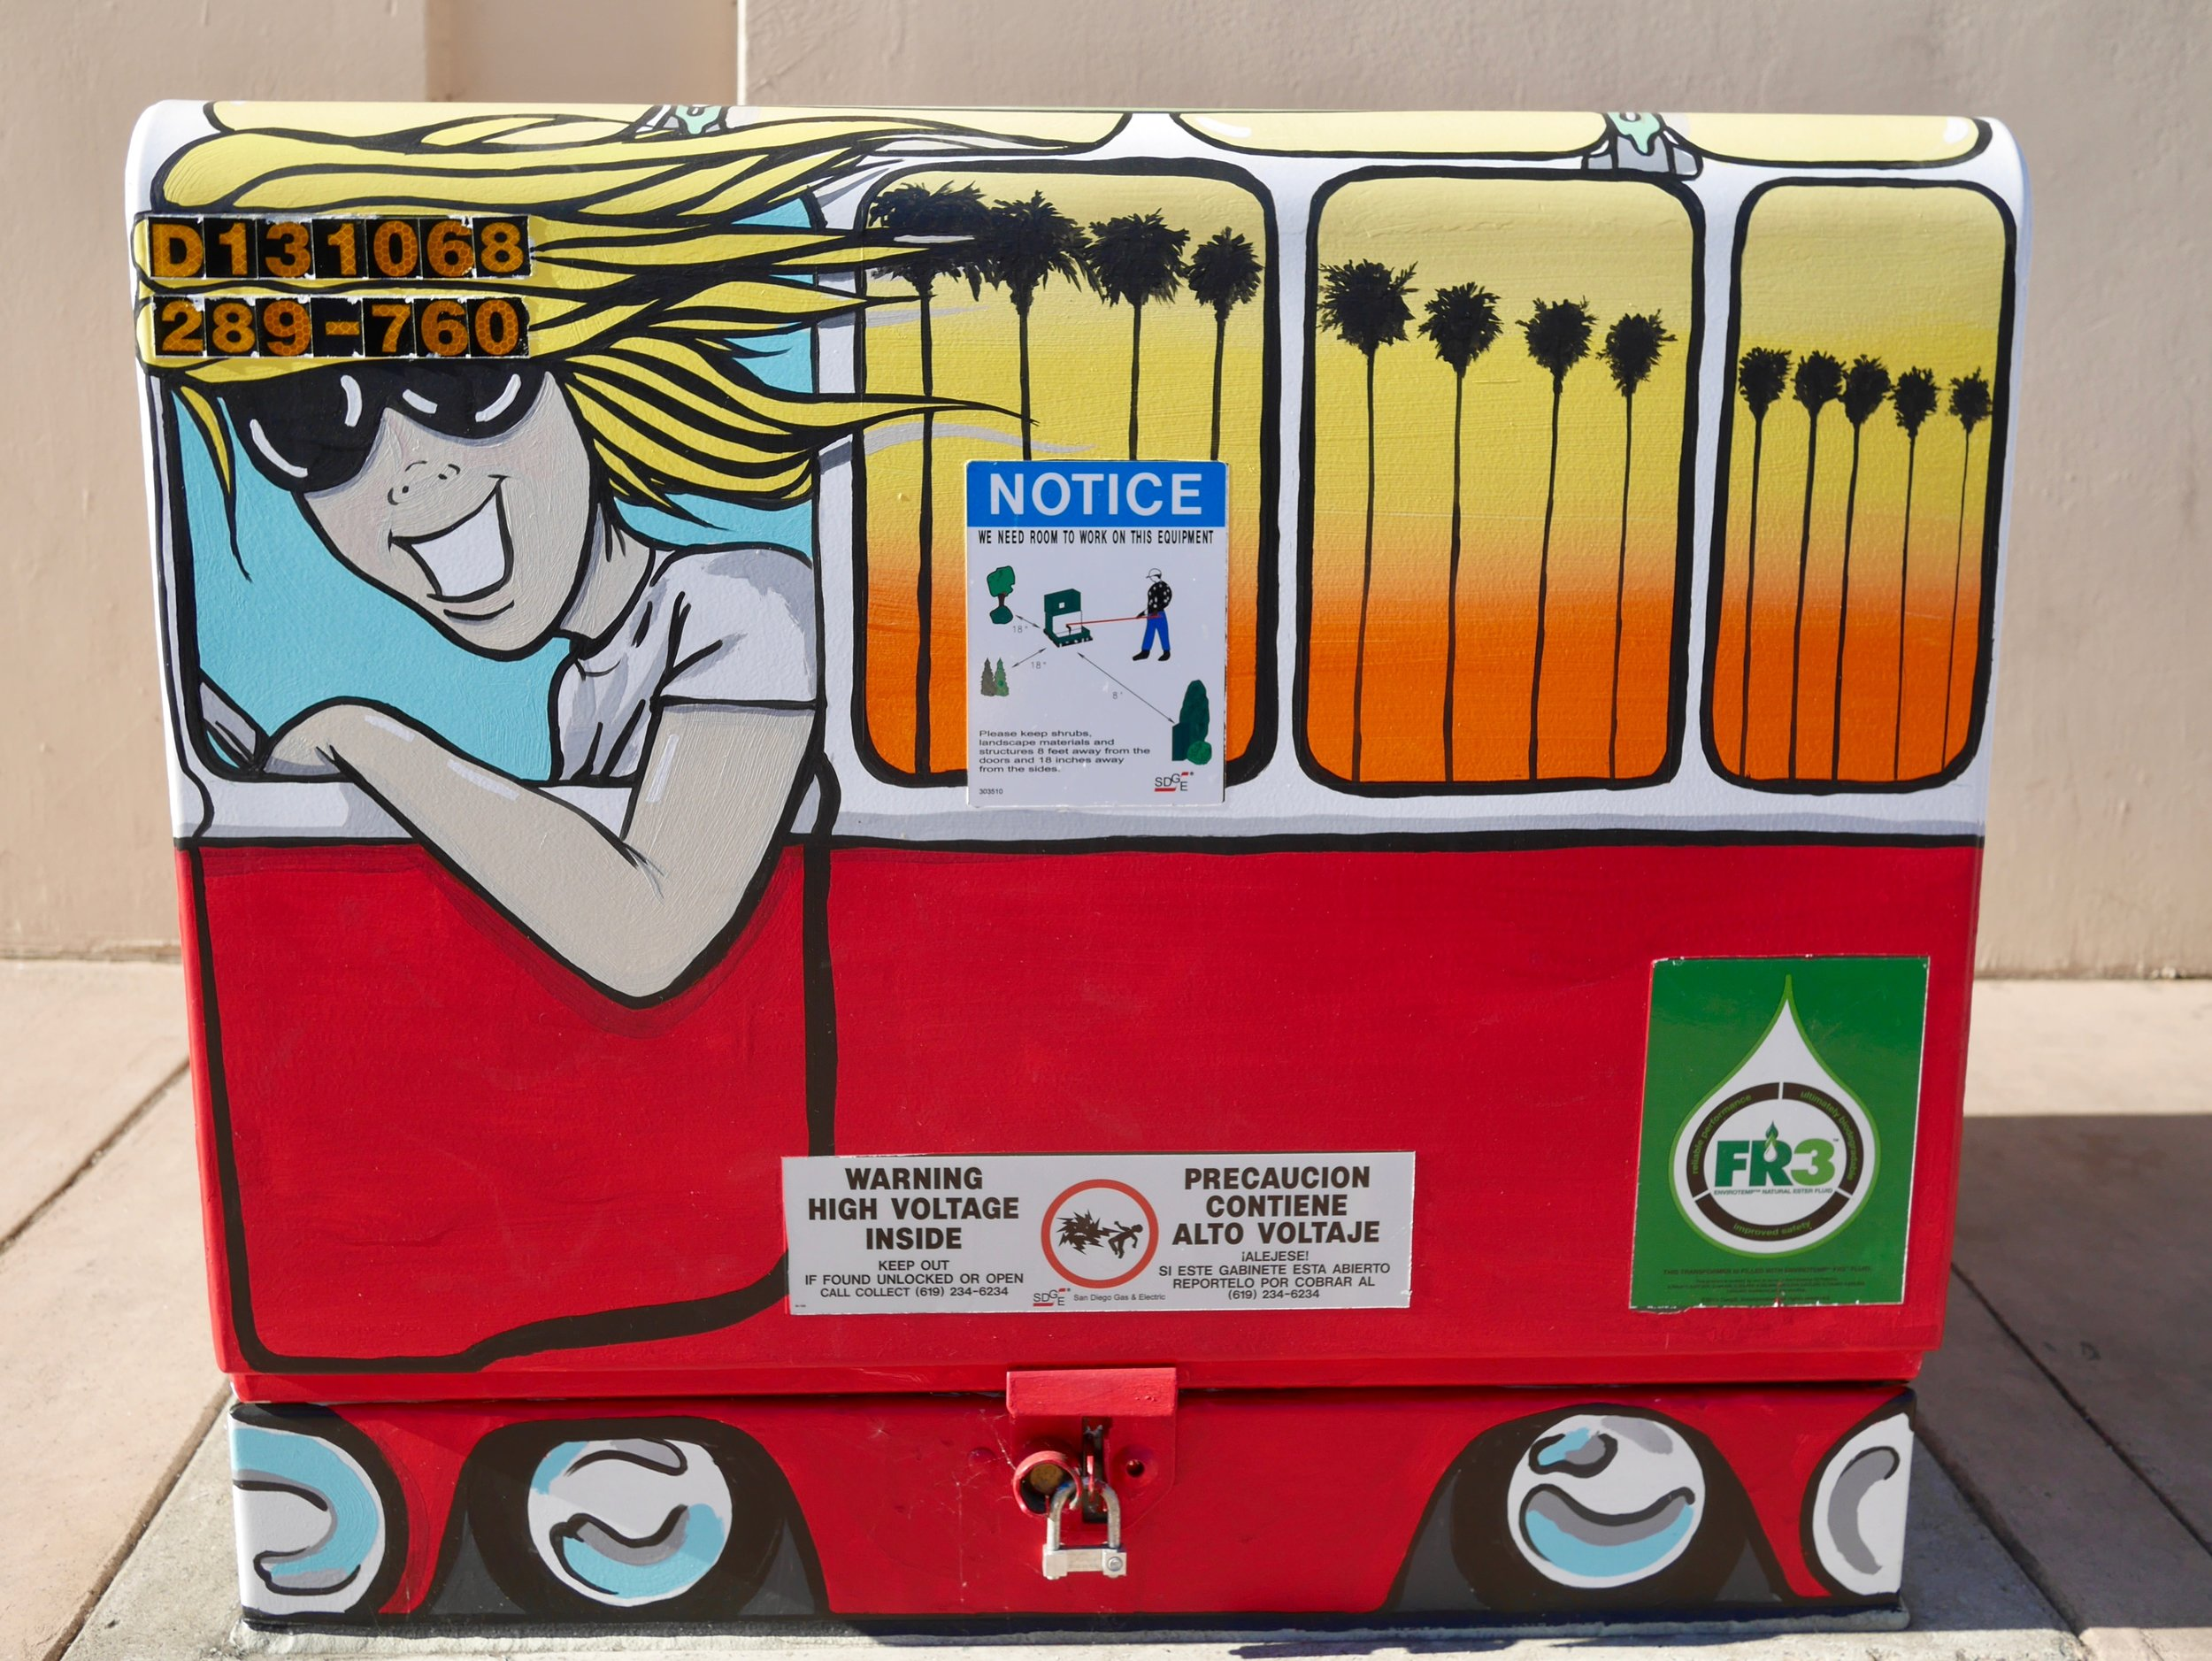 Utility Box painting by Steve Burrows of  Burrito Art  completed November 2017